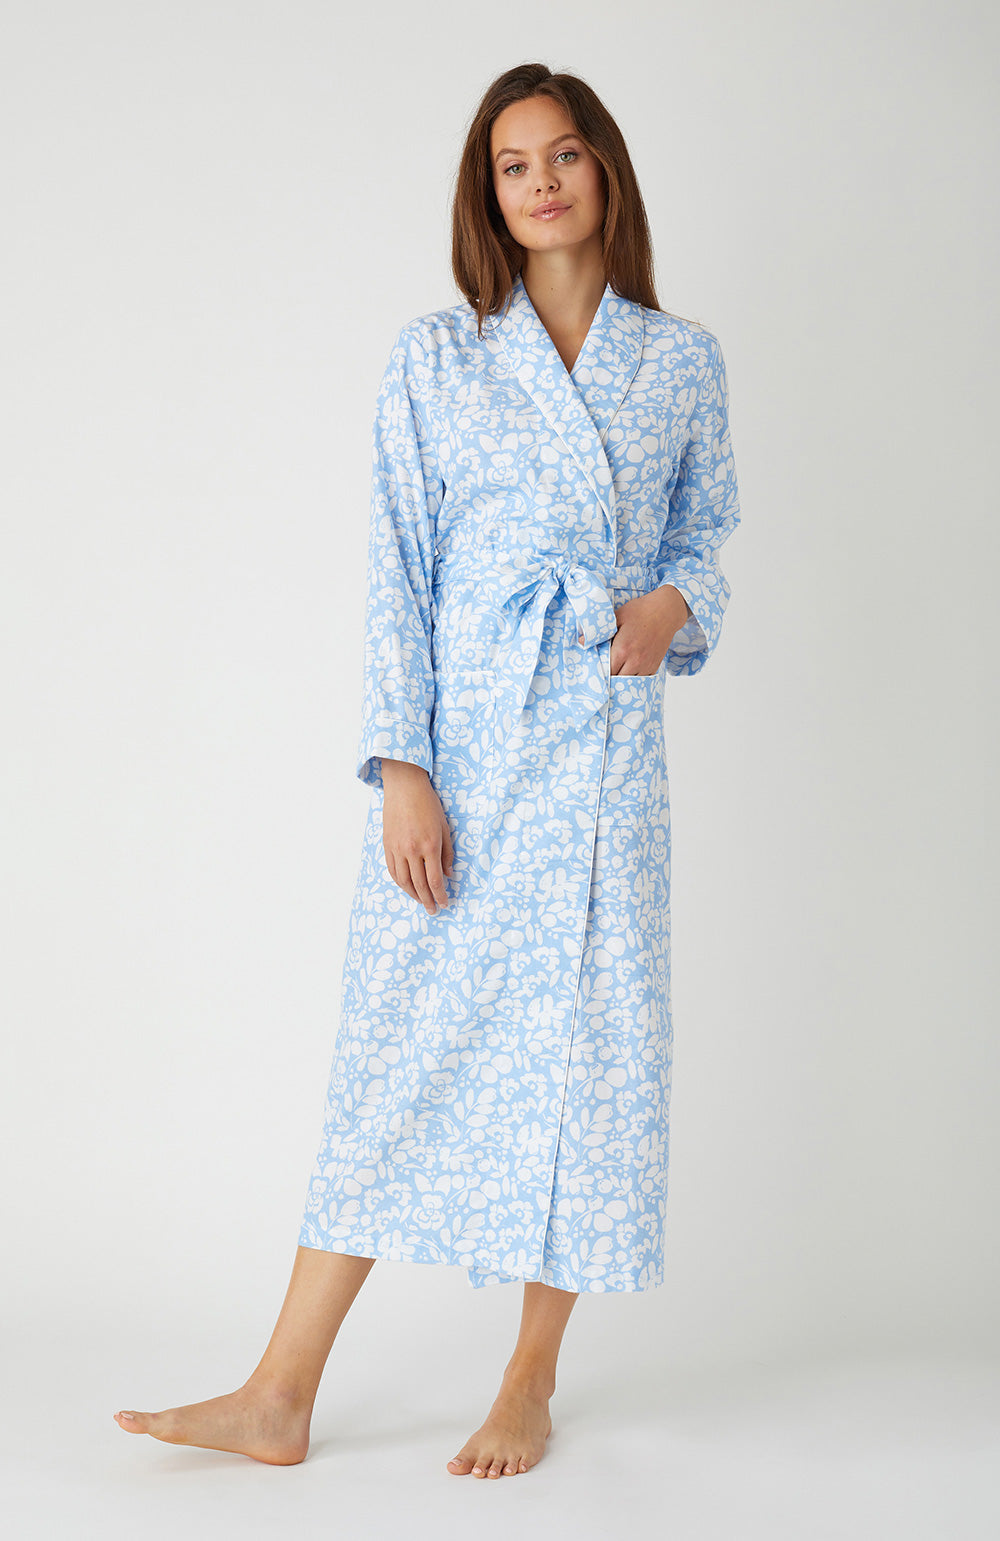 Brushed Cotton Blue Floral Gown | Bonsoir of London